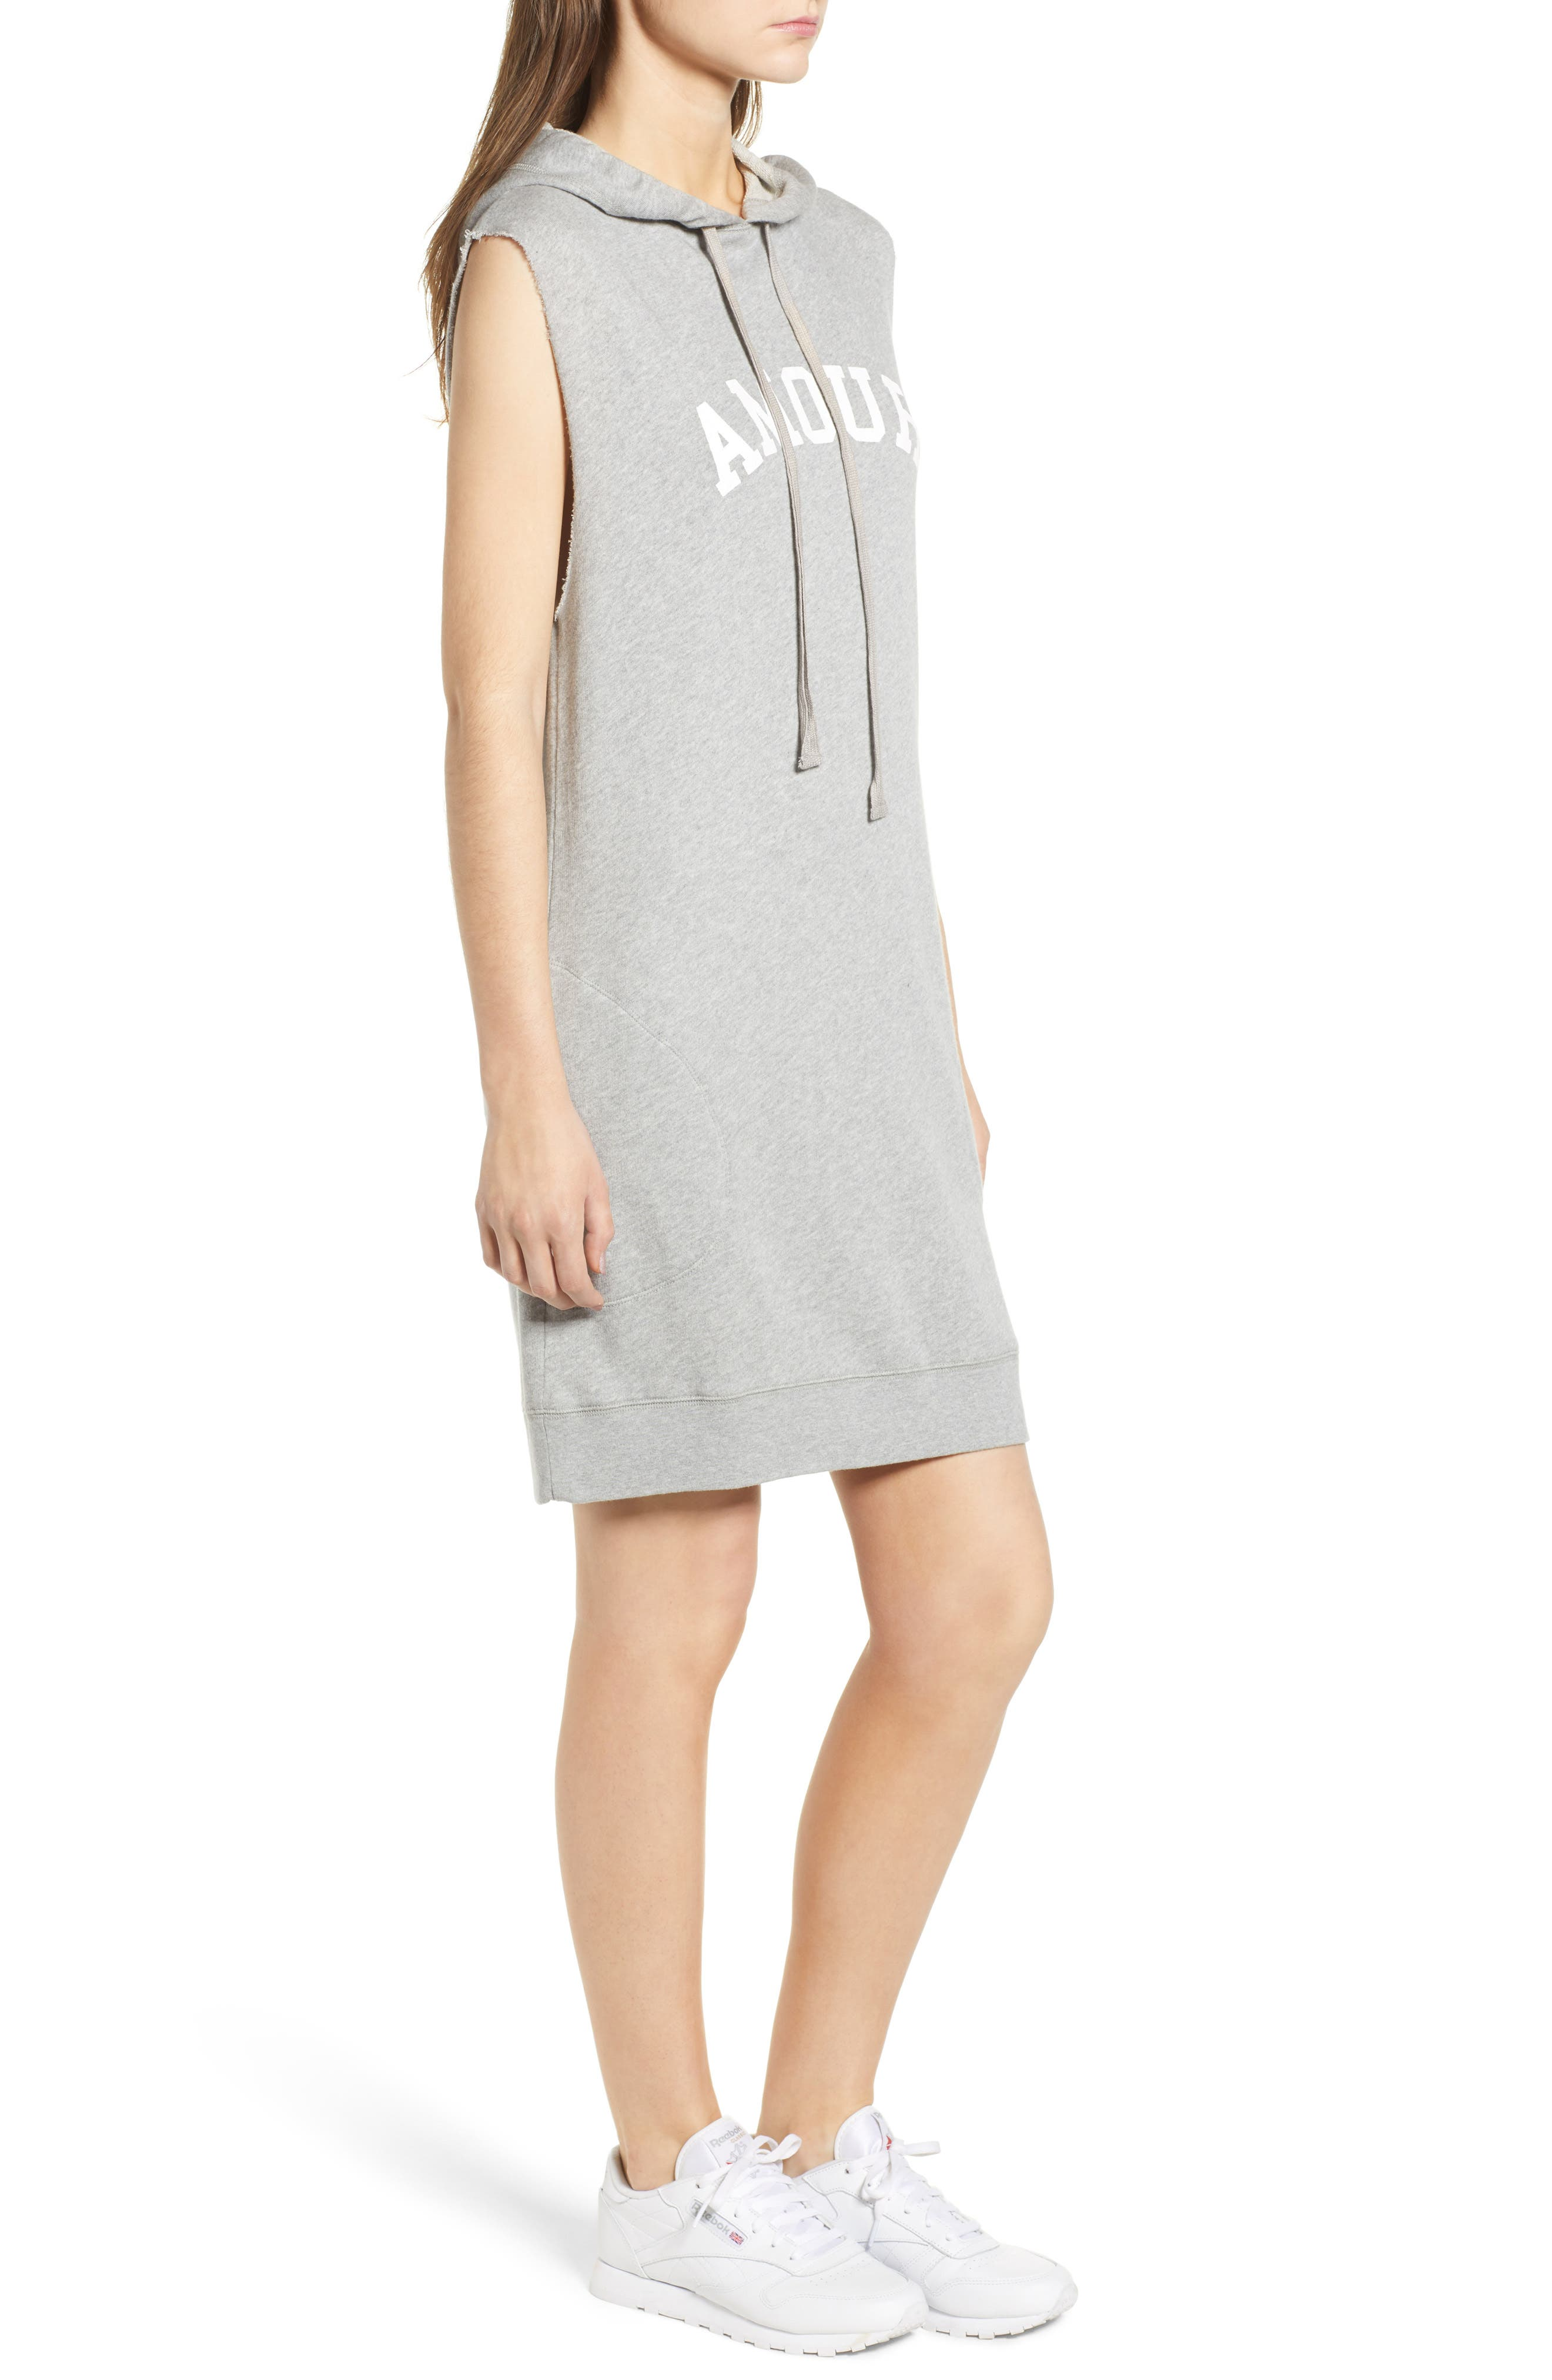 Sia Bis Hooded Dress,                             Alternate thumbnail 3, color,                             Melange Grey